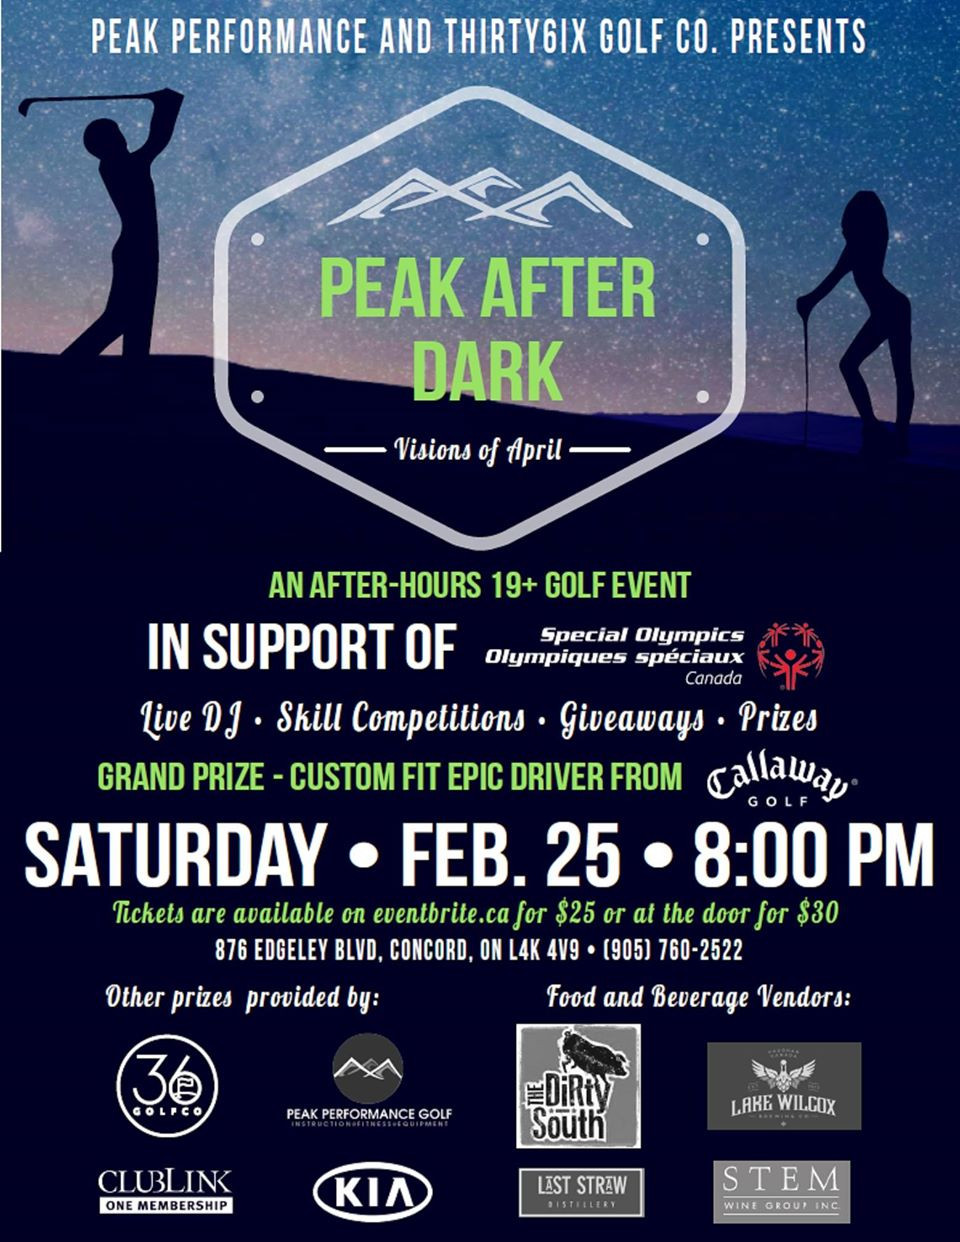 Come and see us at Peak Performance Golf Vaughan's Peak After Dark event on Feburary 25, 2017. We'll be pouring samples to help with your swing!